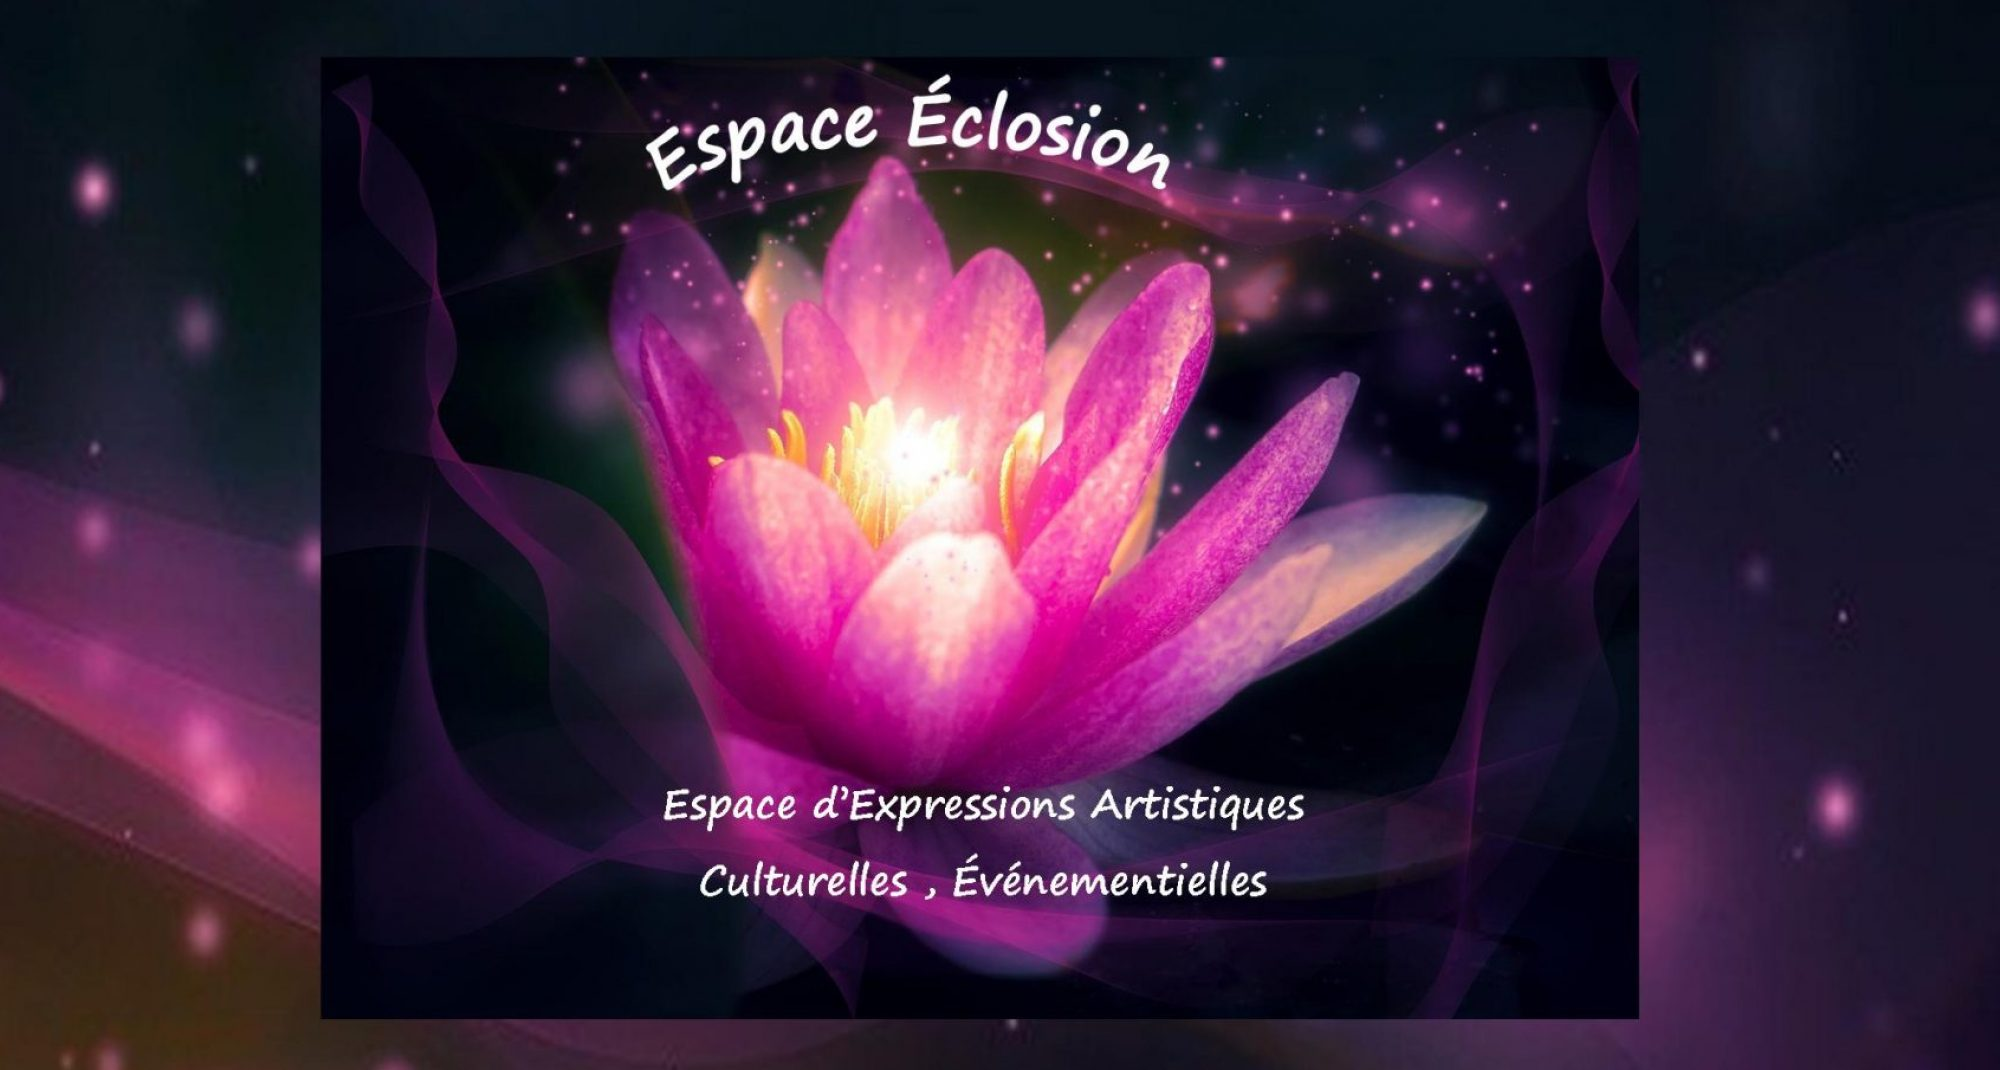 Espace Eclosion